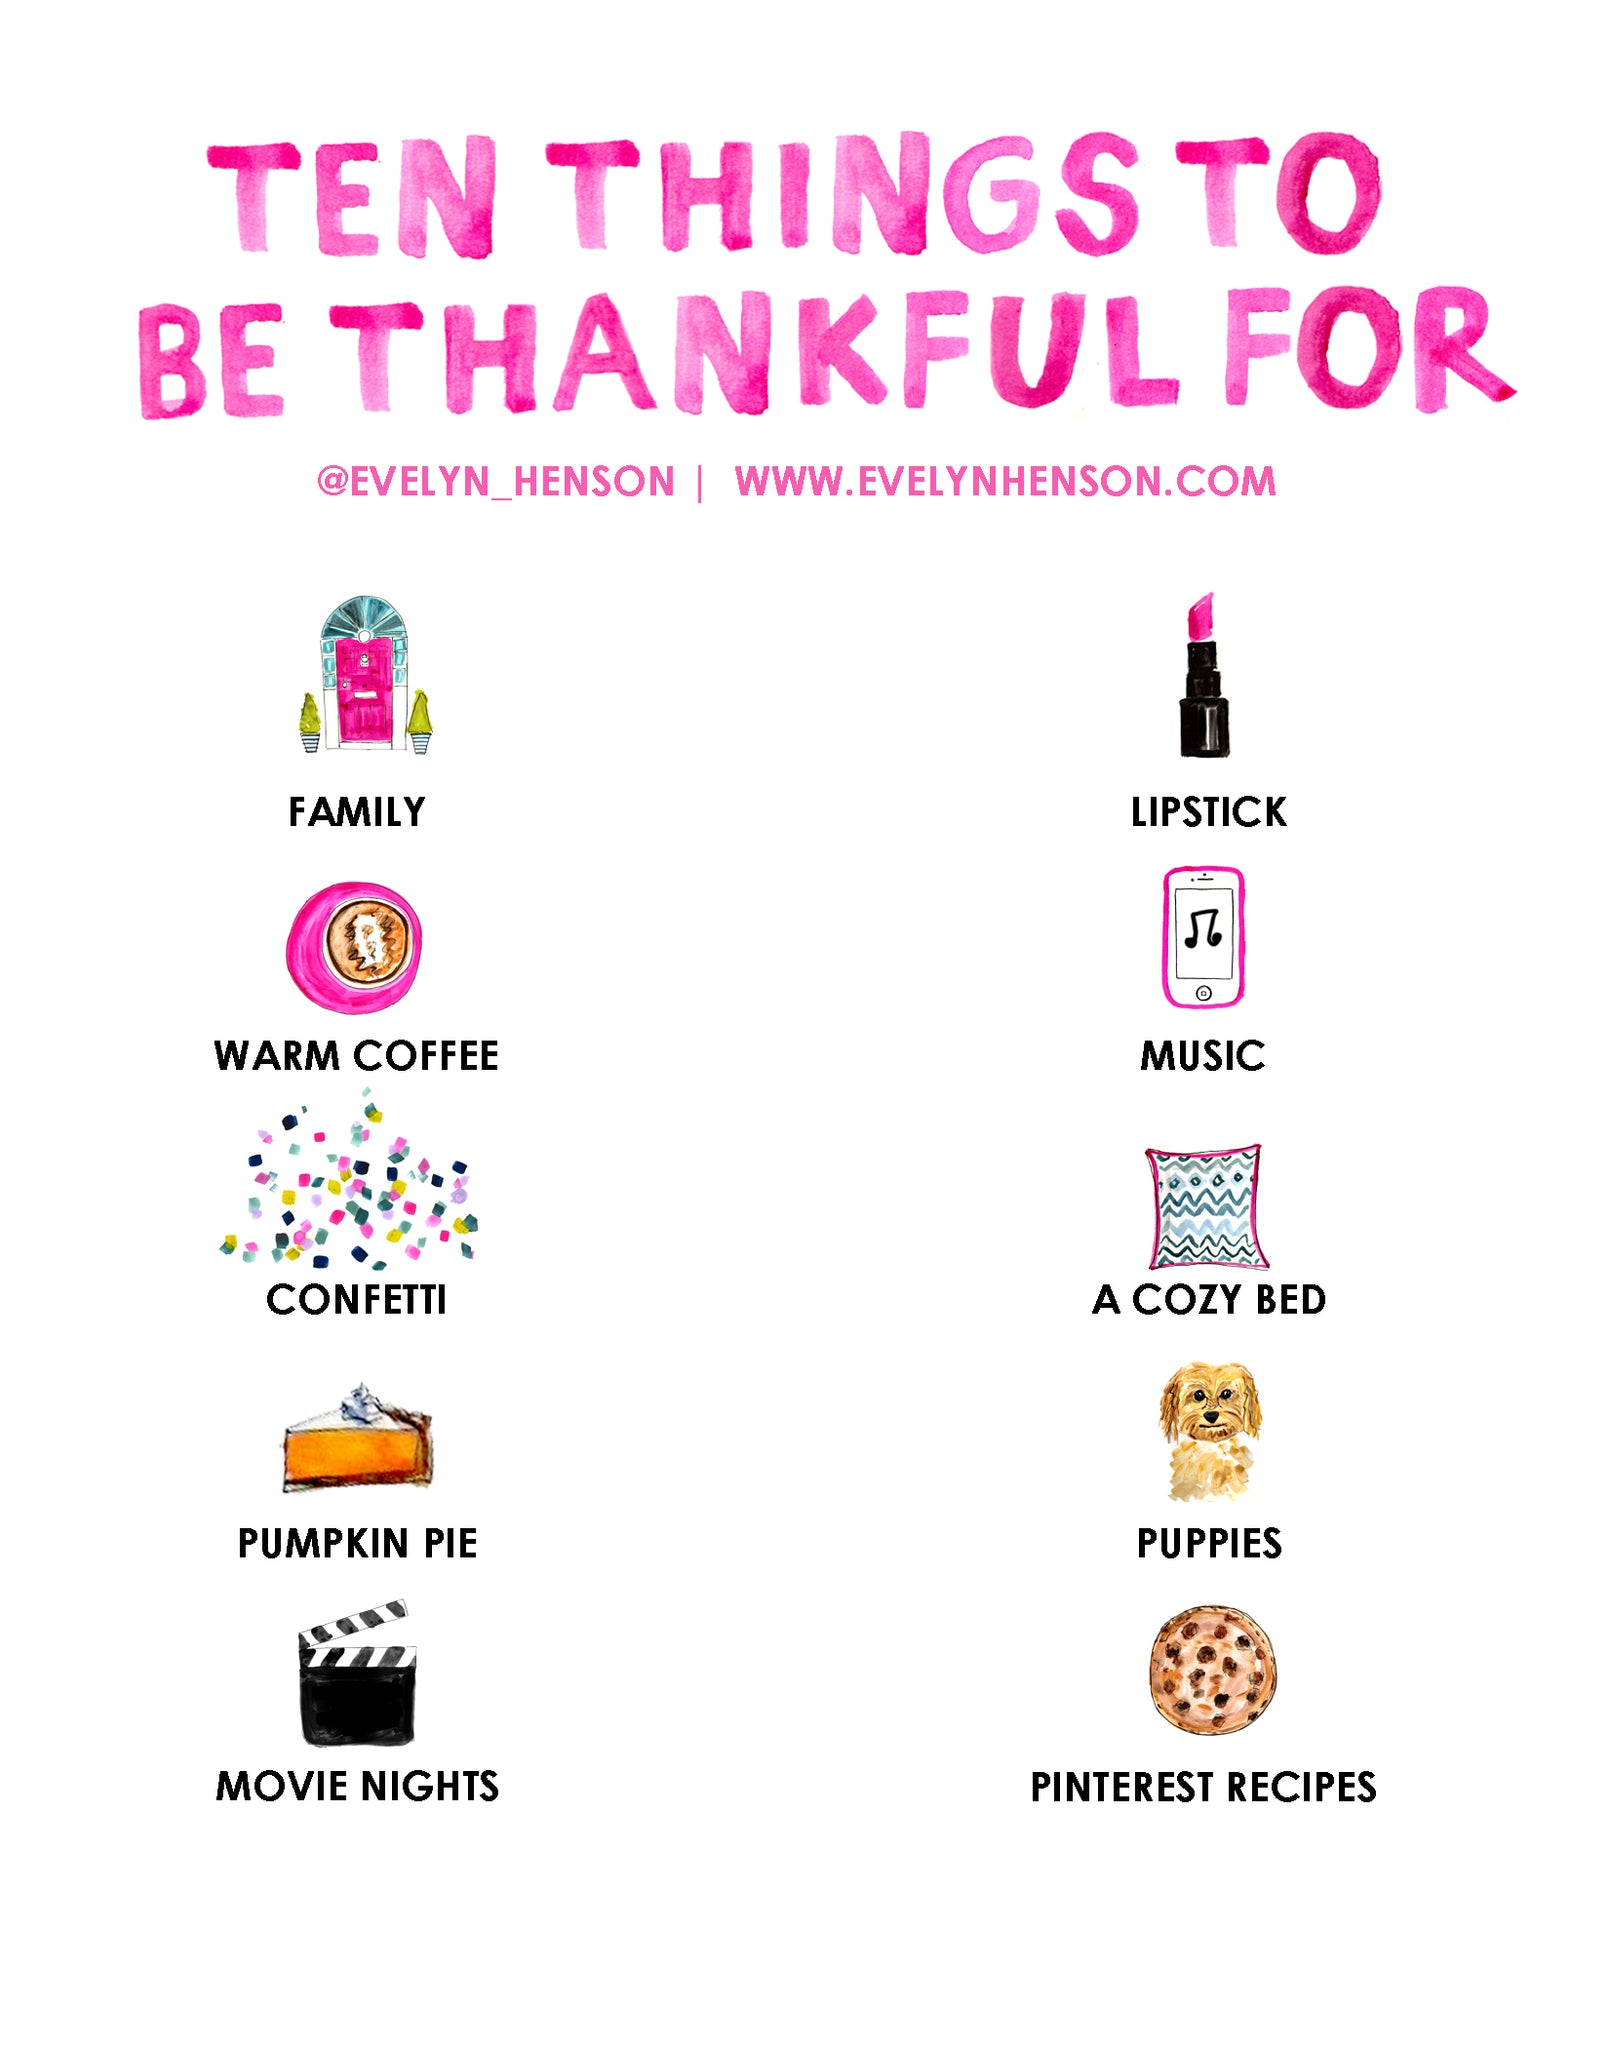 10 things to be thankful for: www.evelynhenson.com